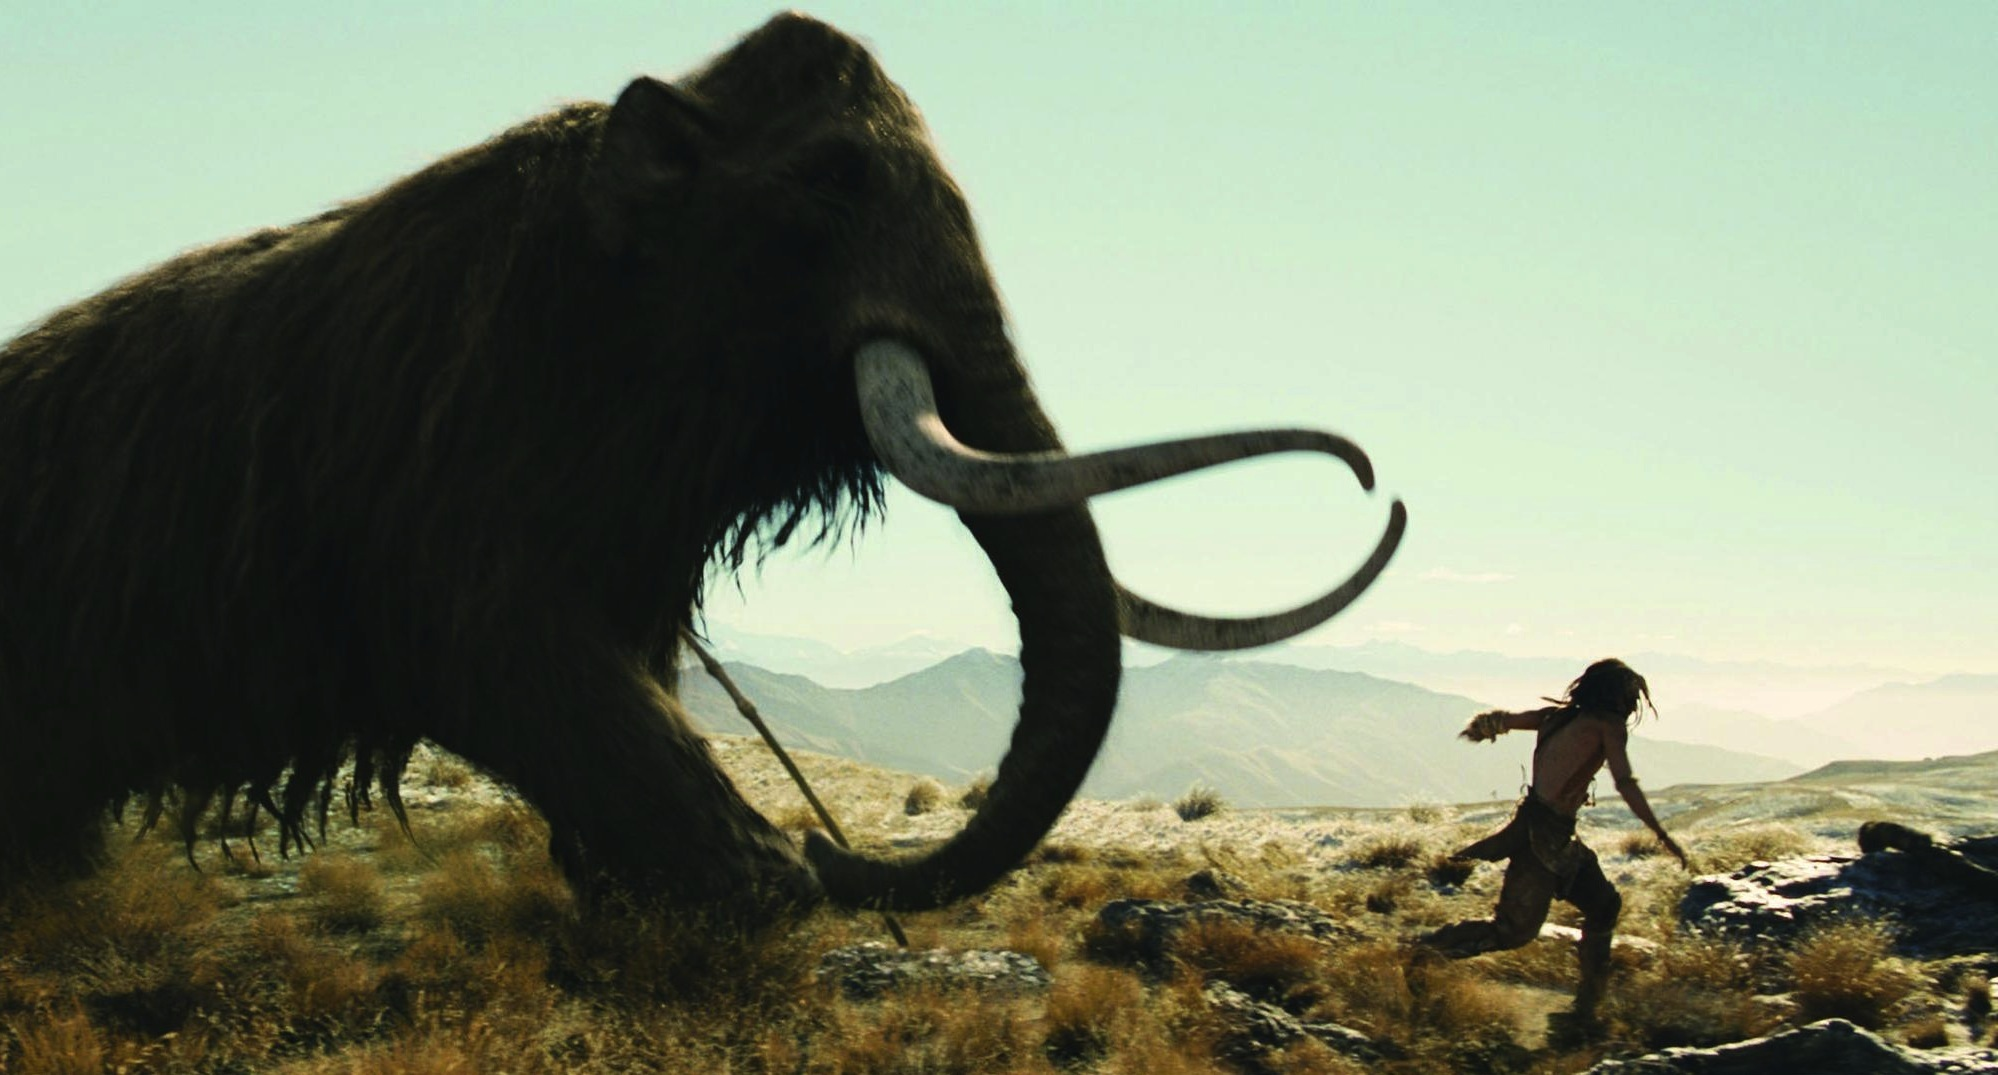 Steven Strait pursued by a mammoth in 10,000 BC (2008)